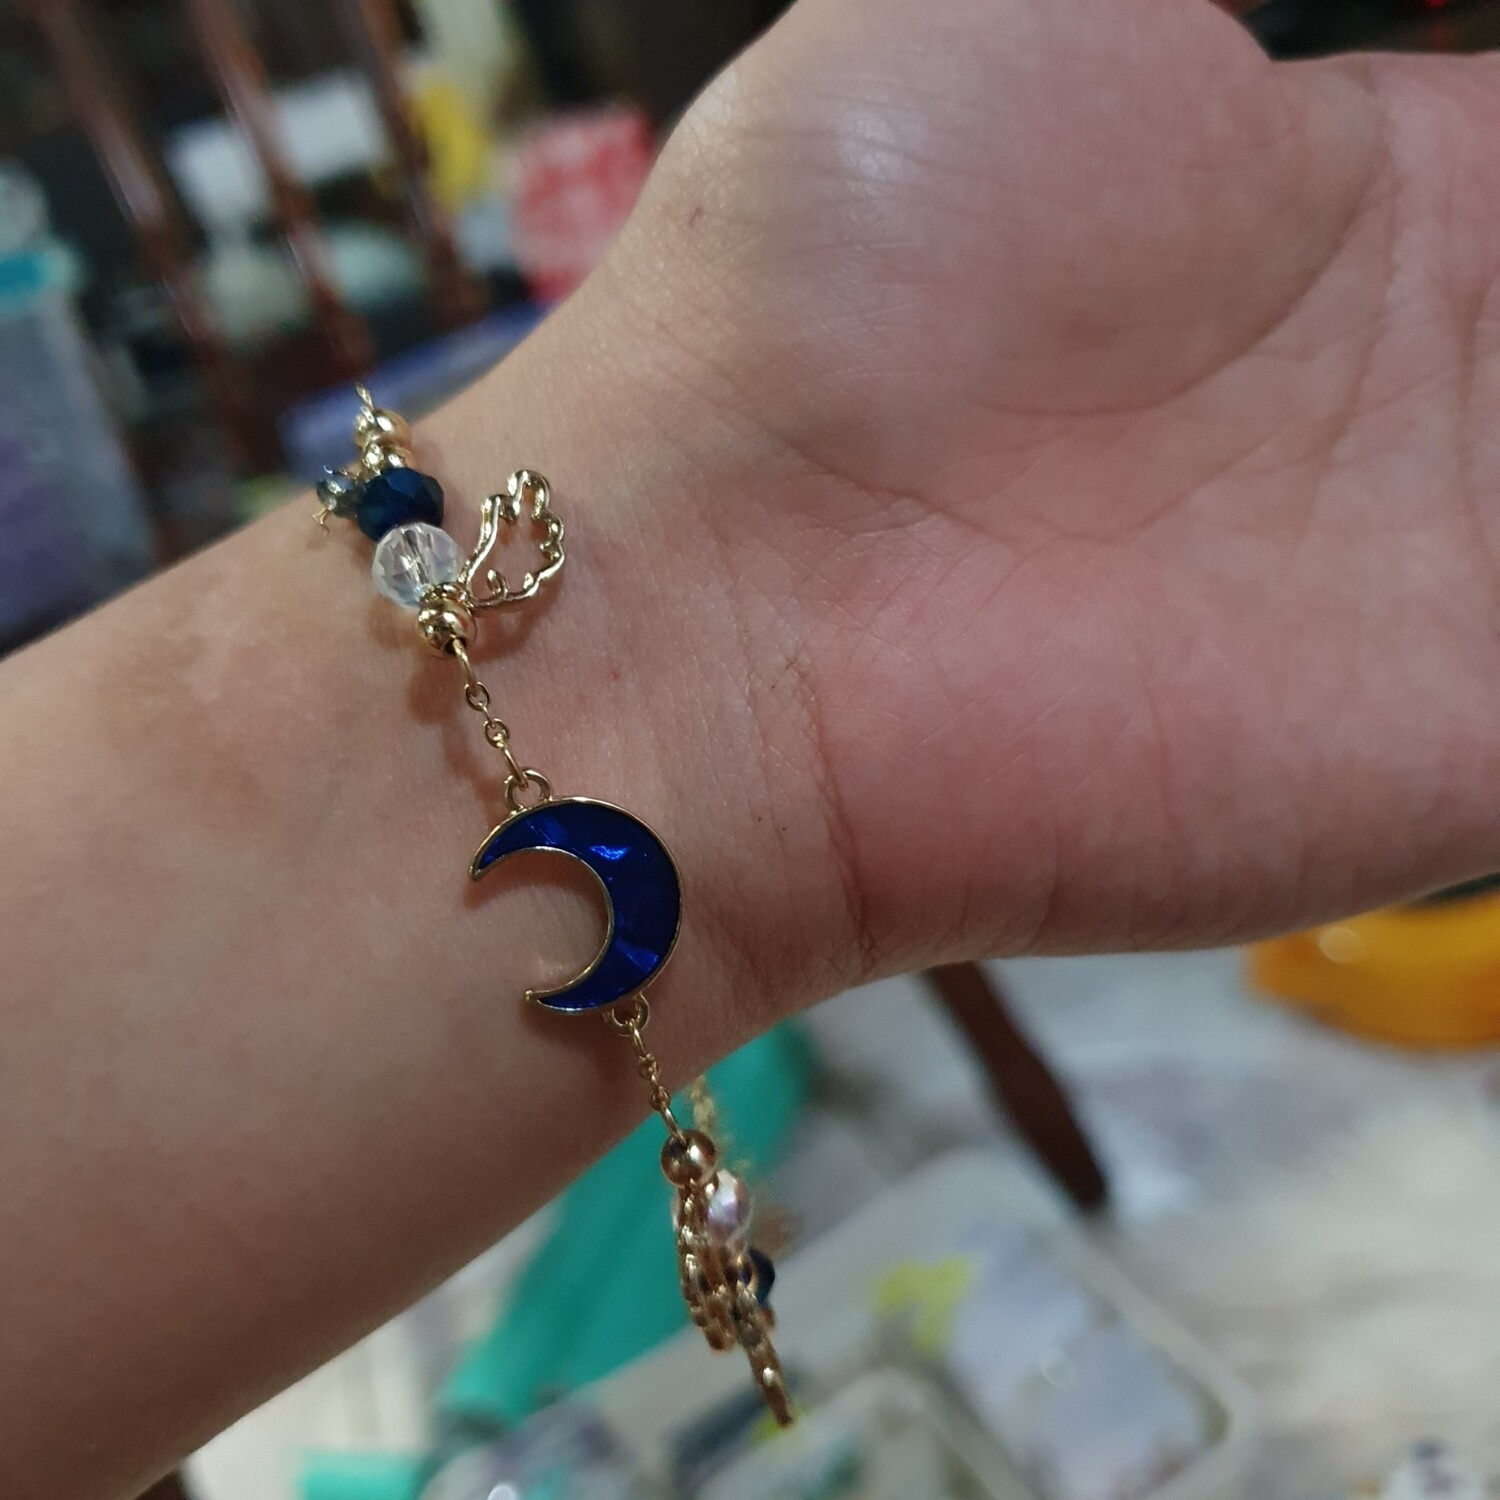 Bracelet: Ill take you to the moon